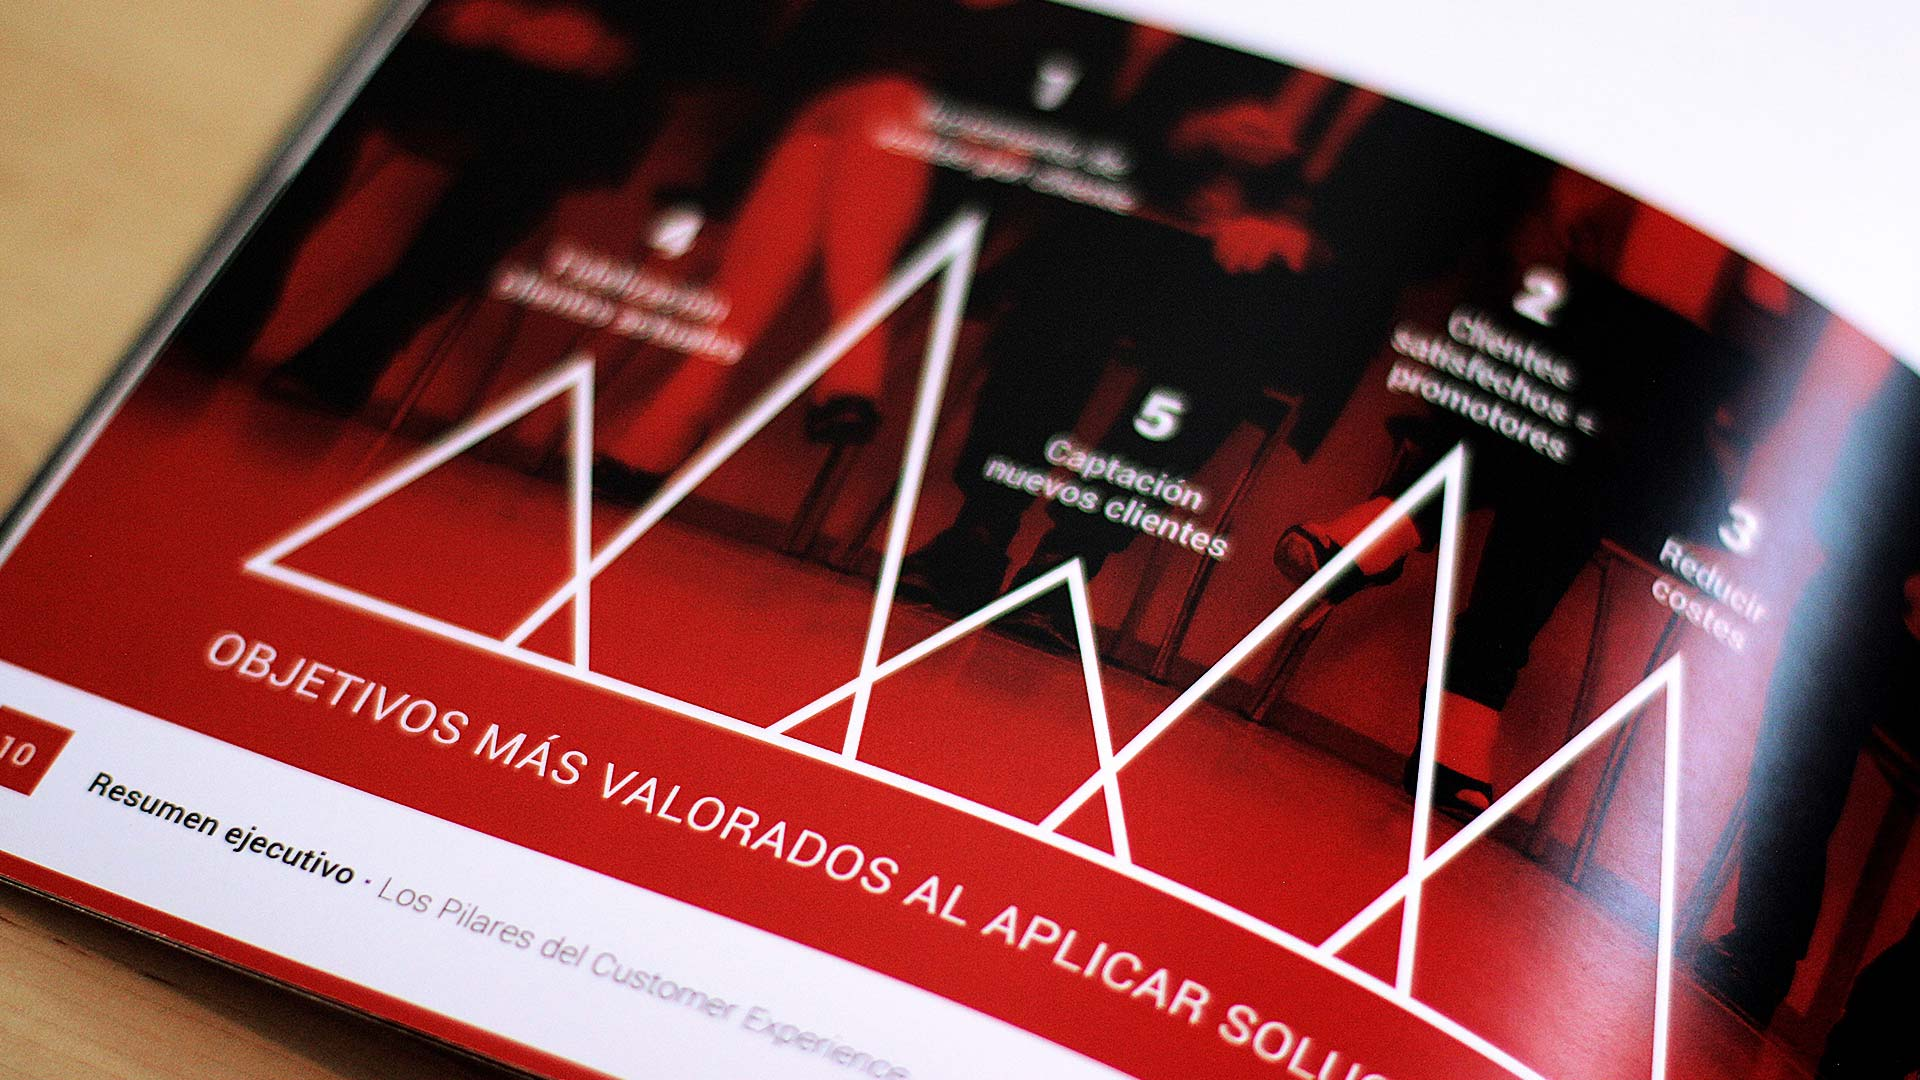 oracle-content-marketing-pilares-customer-experience-2017-19